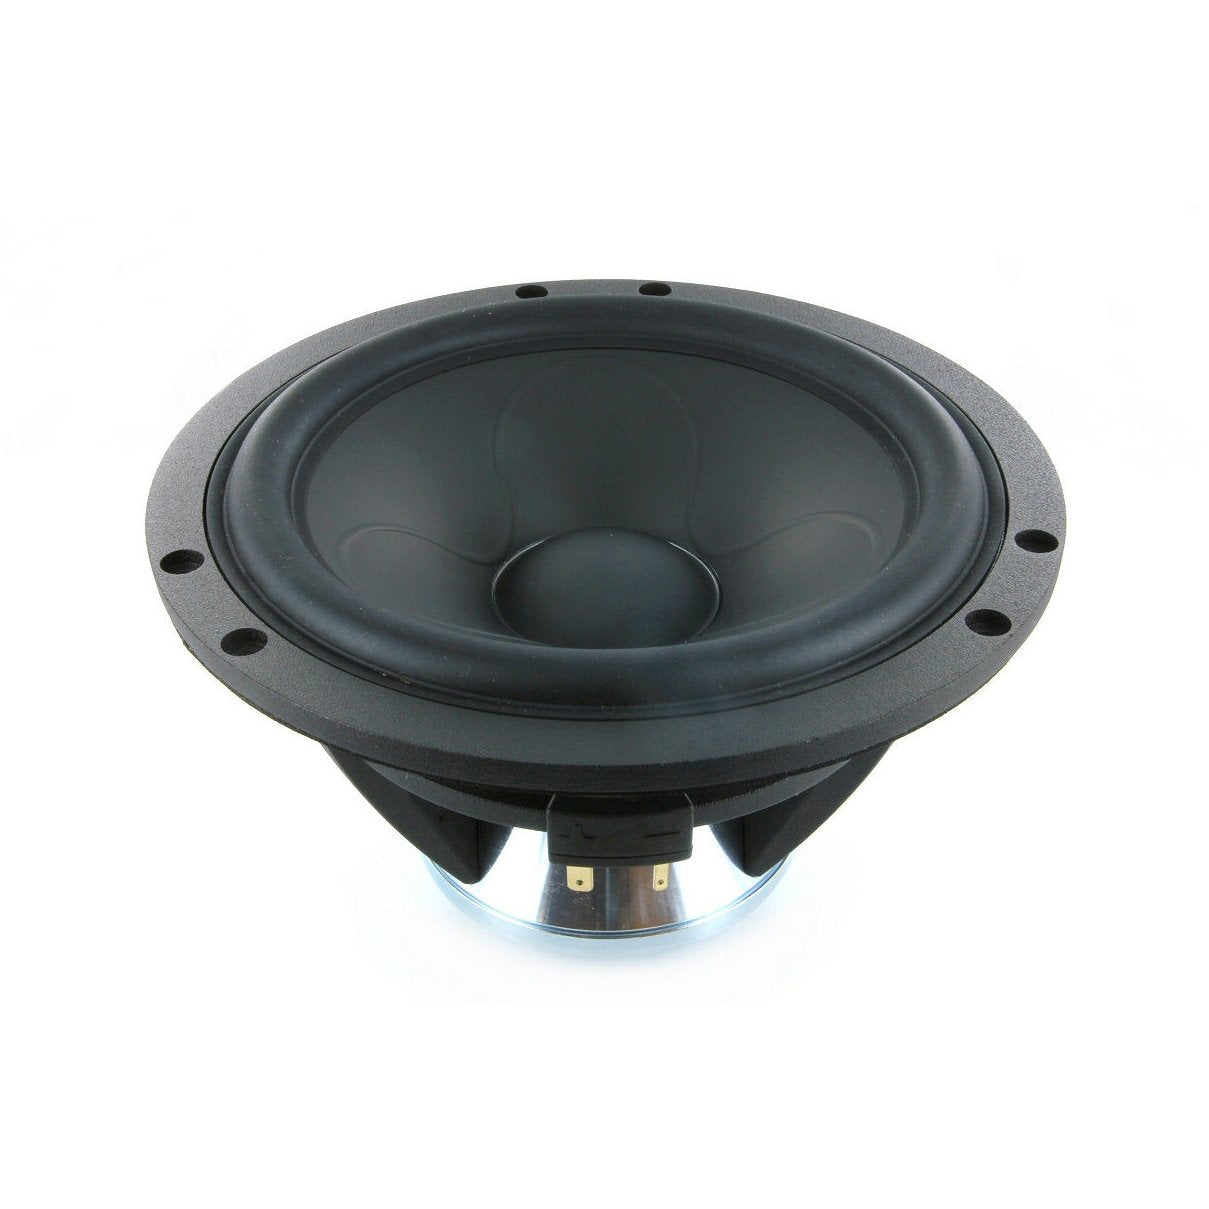 Scanspeak Illuminator 18WU/8747T00 Woofer